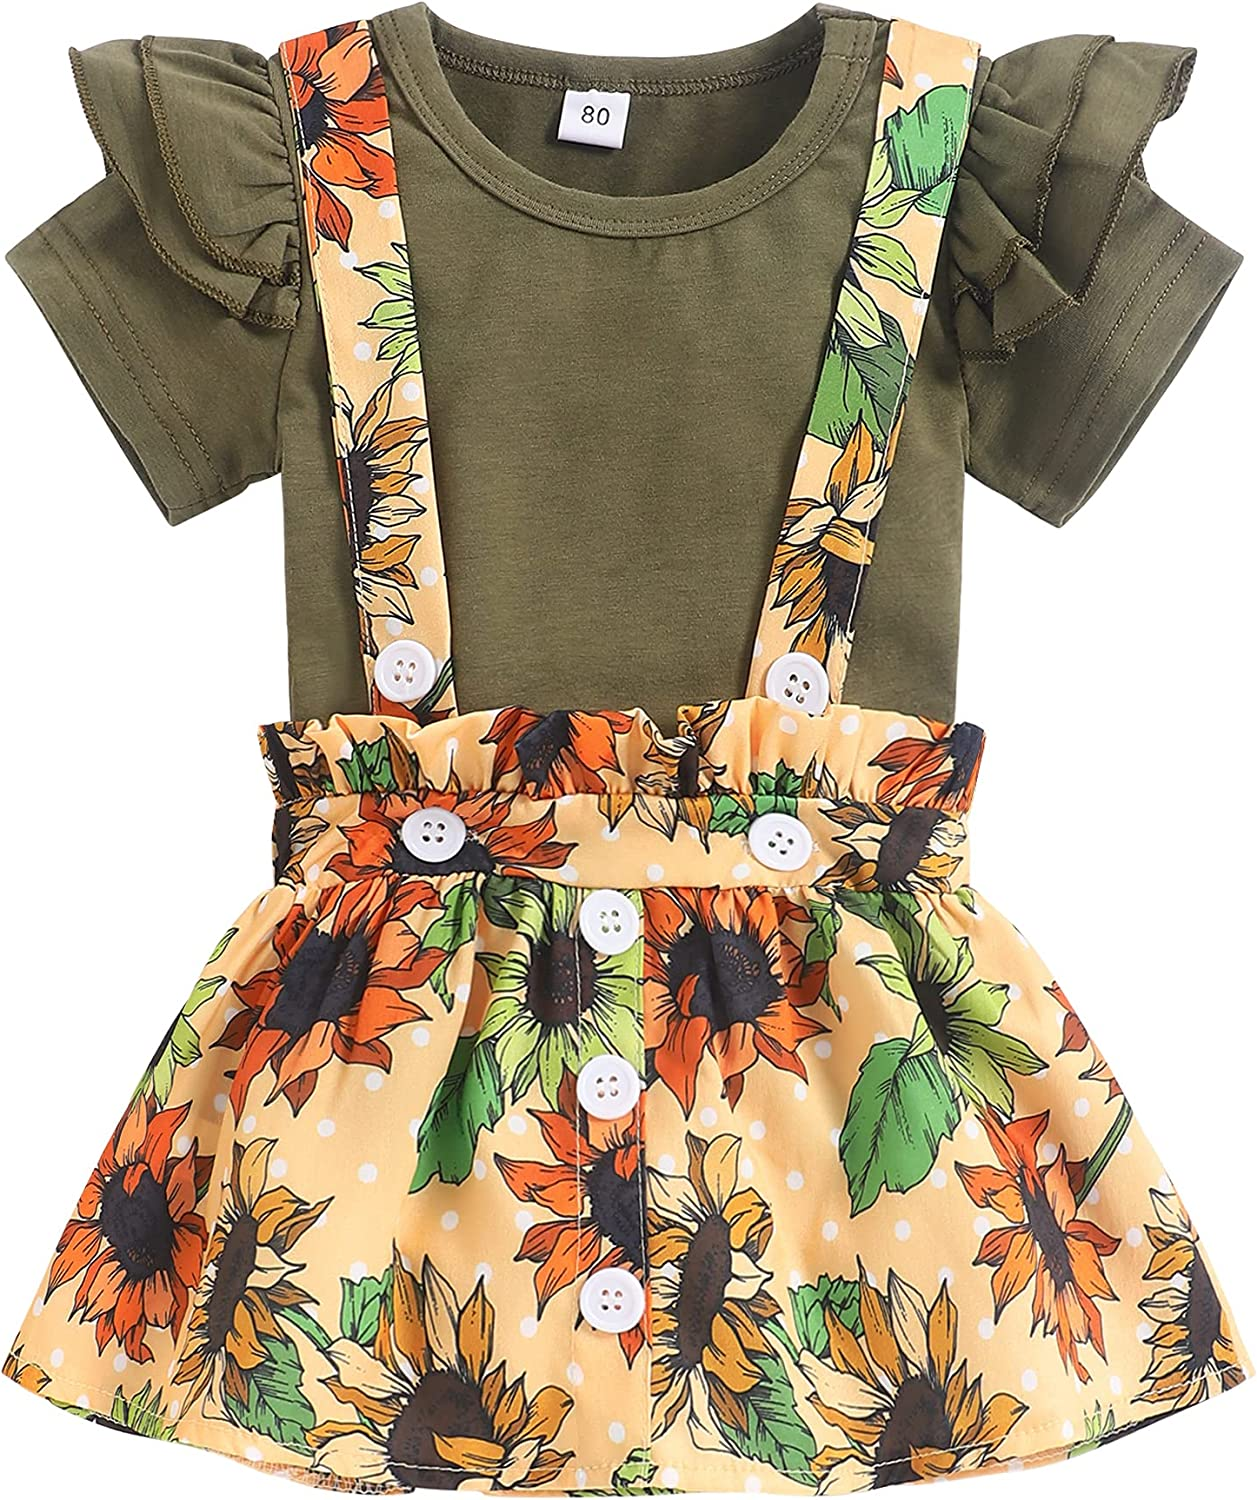 Toddler Baby Girl Clothes Overall Outfits Sets Short Sleeve Floral Ruffle Top Suspender Skirt Summer Clothes for Baby Girl